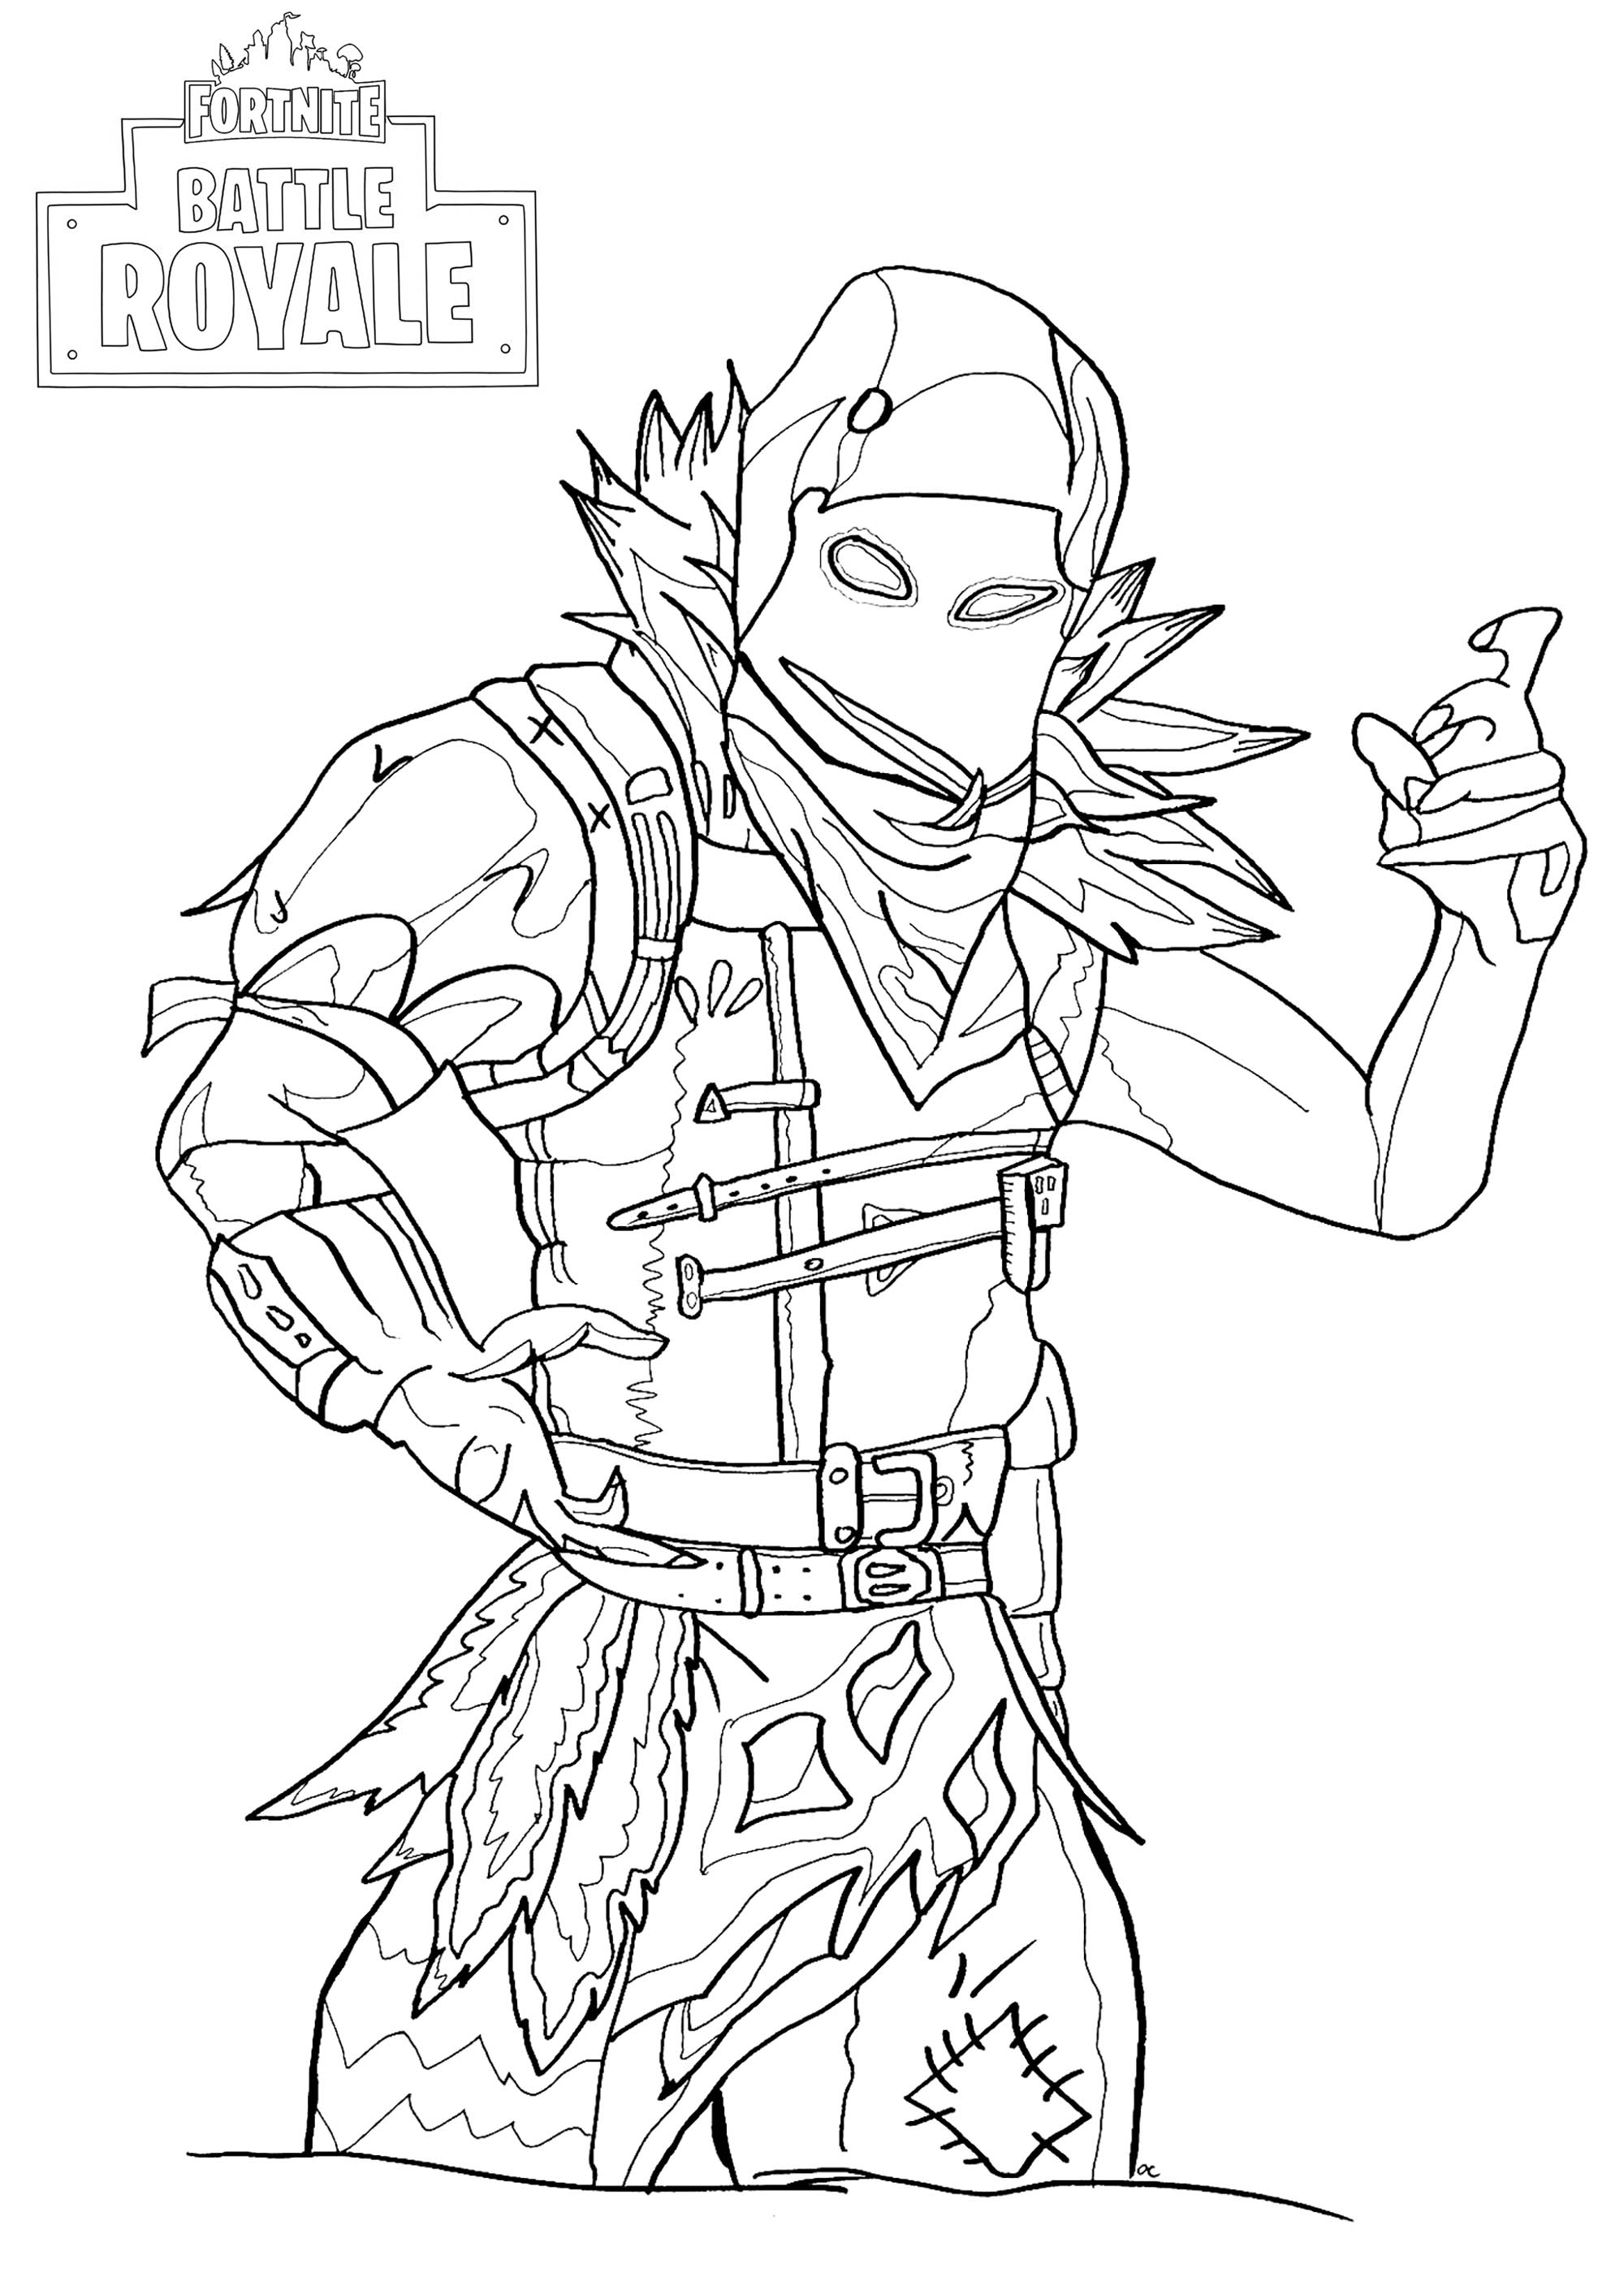 Coloriage A Imprimer Gratuit Fortnite.Fortnite Battle Royale Raven Coloriage Fortnite Battle